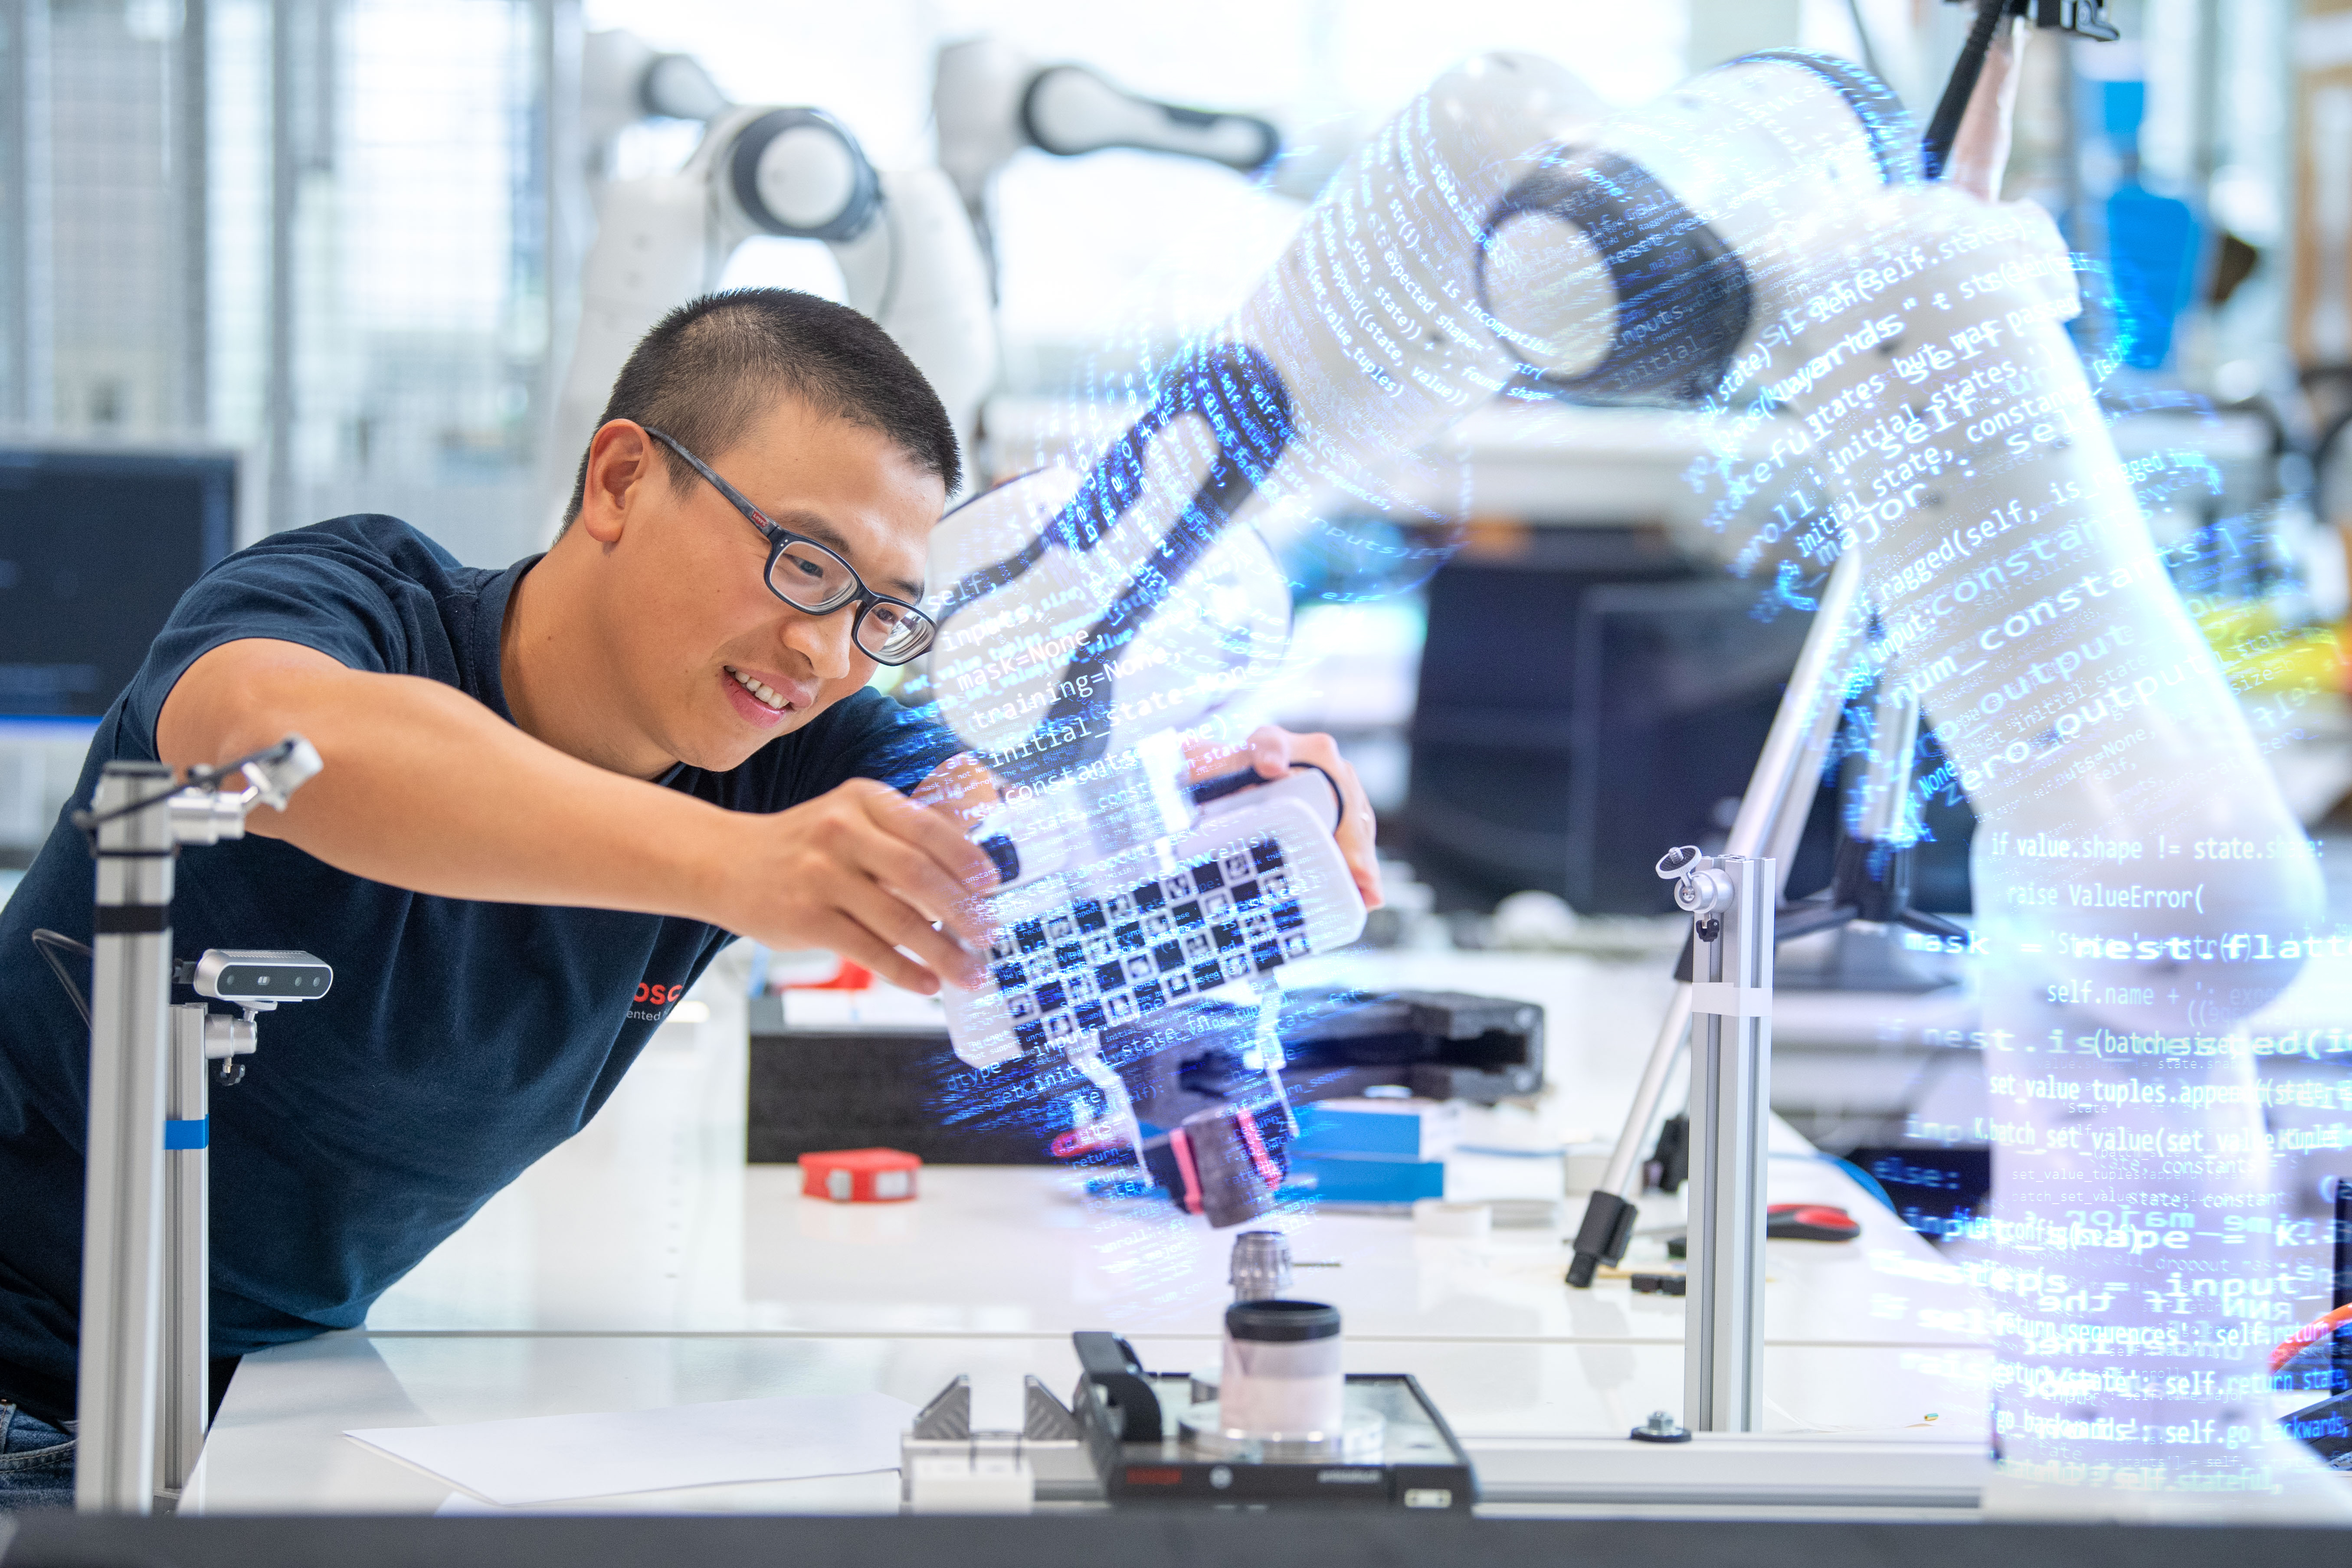 Bosch is fully committed to artificial intelligence in manufacturing